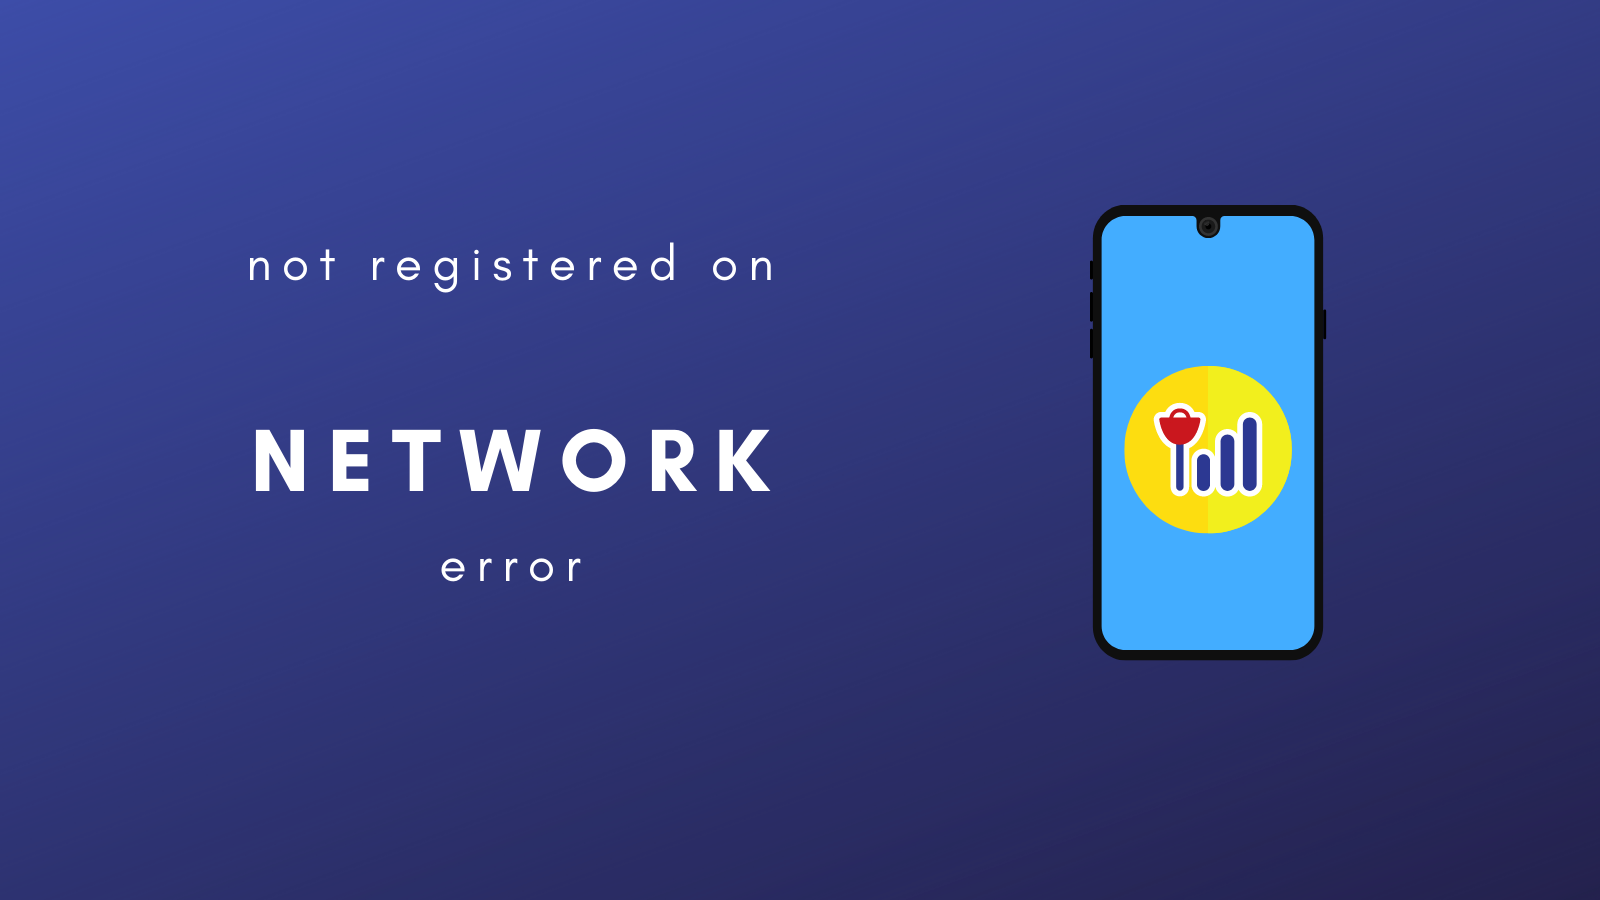 How To Fix Not Registered On Network On Samsung Galaxy /Android?